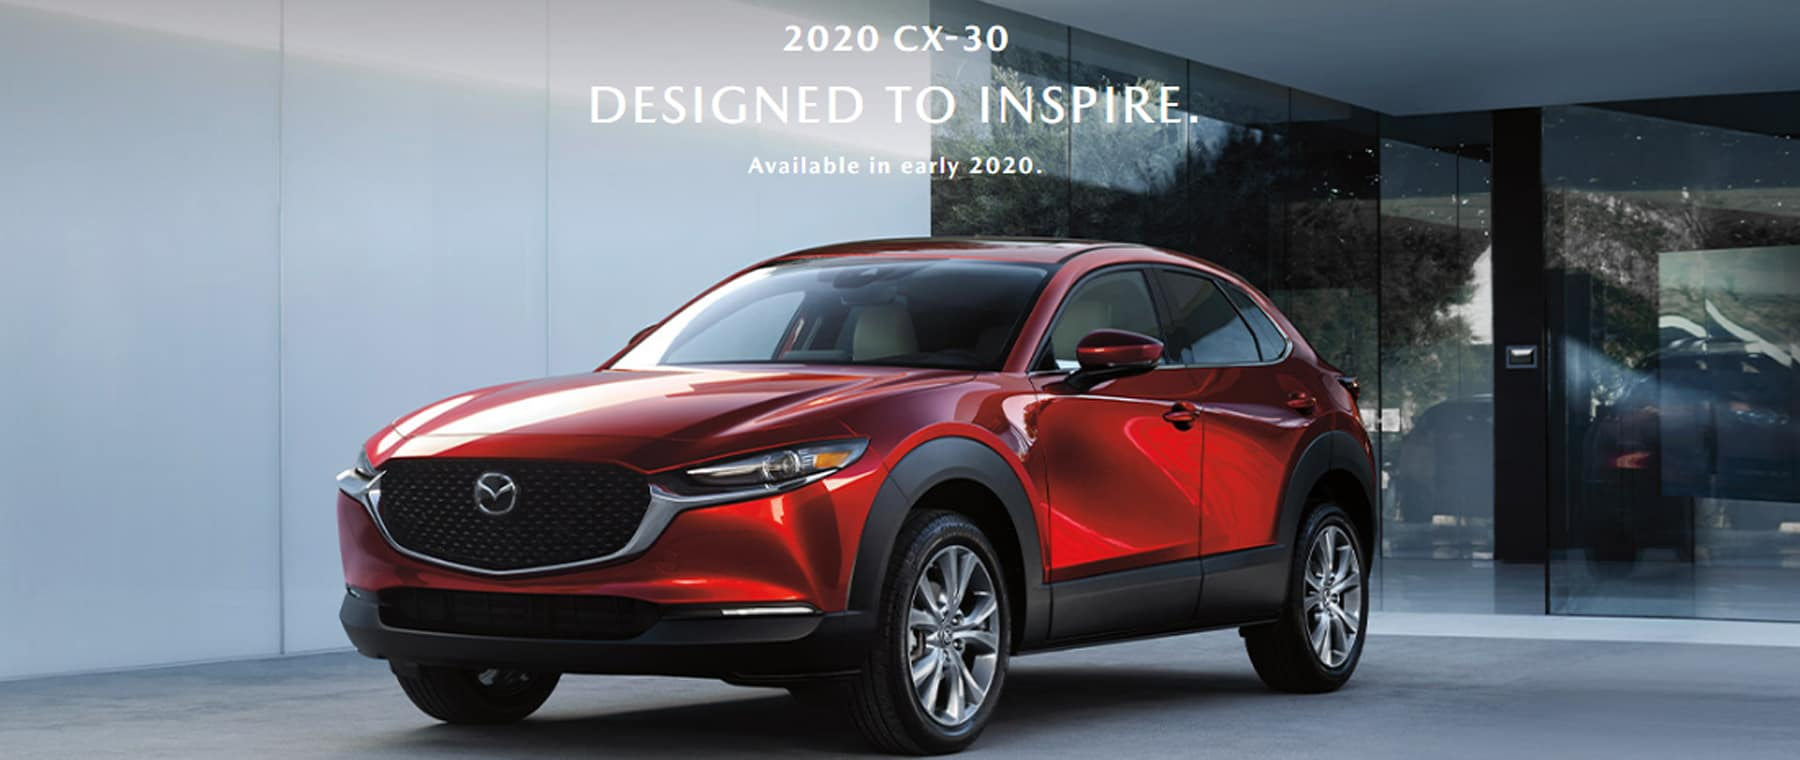 red cx-30 in front of glass window